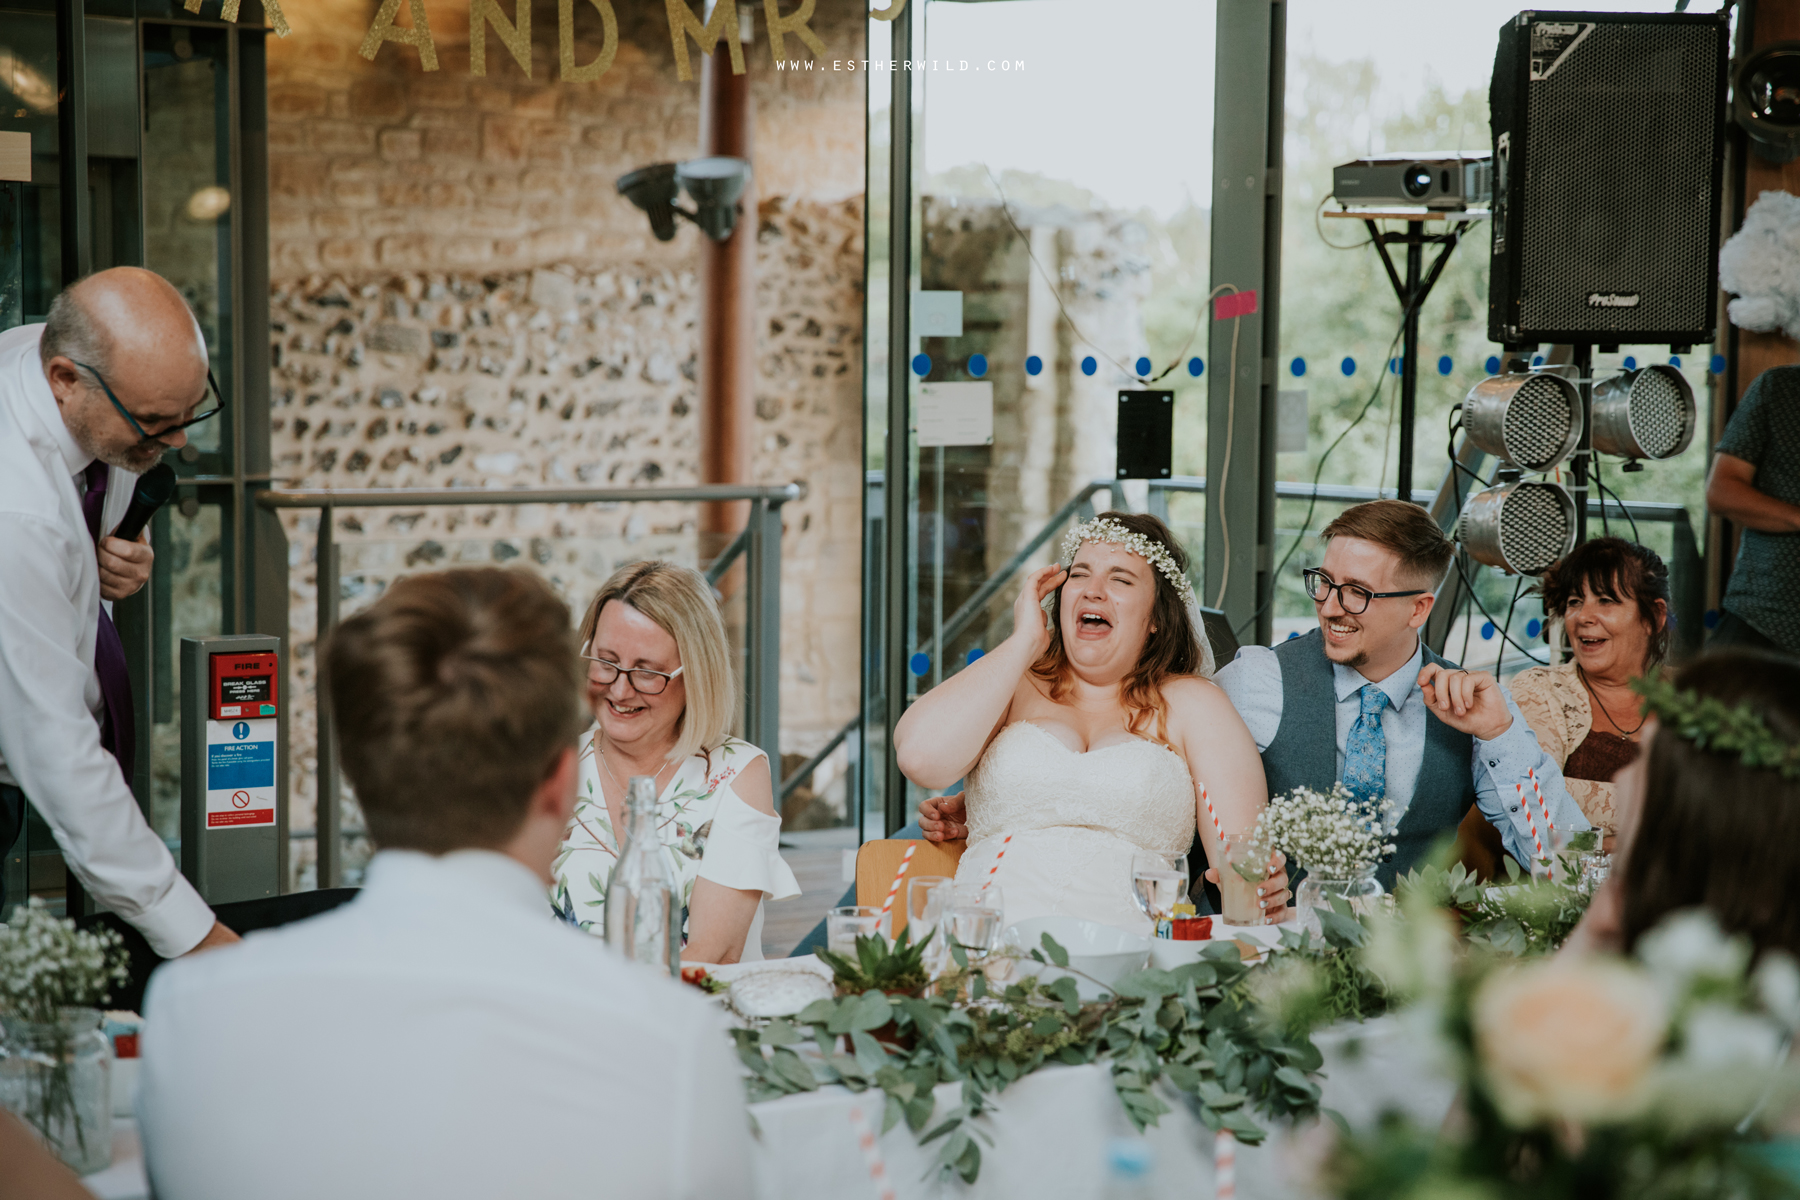 Norwich_Castle_Arcade_Grosvenor_Chip_Birdcage_Cathedral_Cloisters_Refectory_Wedding_Photography_Esther_Wild_Photographer_Norfolk_Kings_Lynn_3R8A2412.jpg